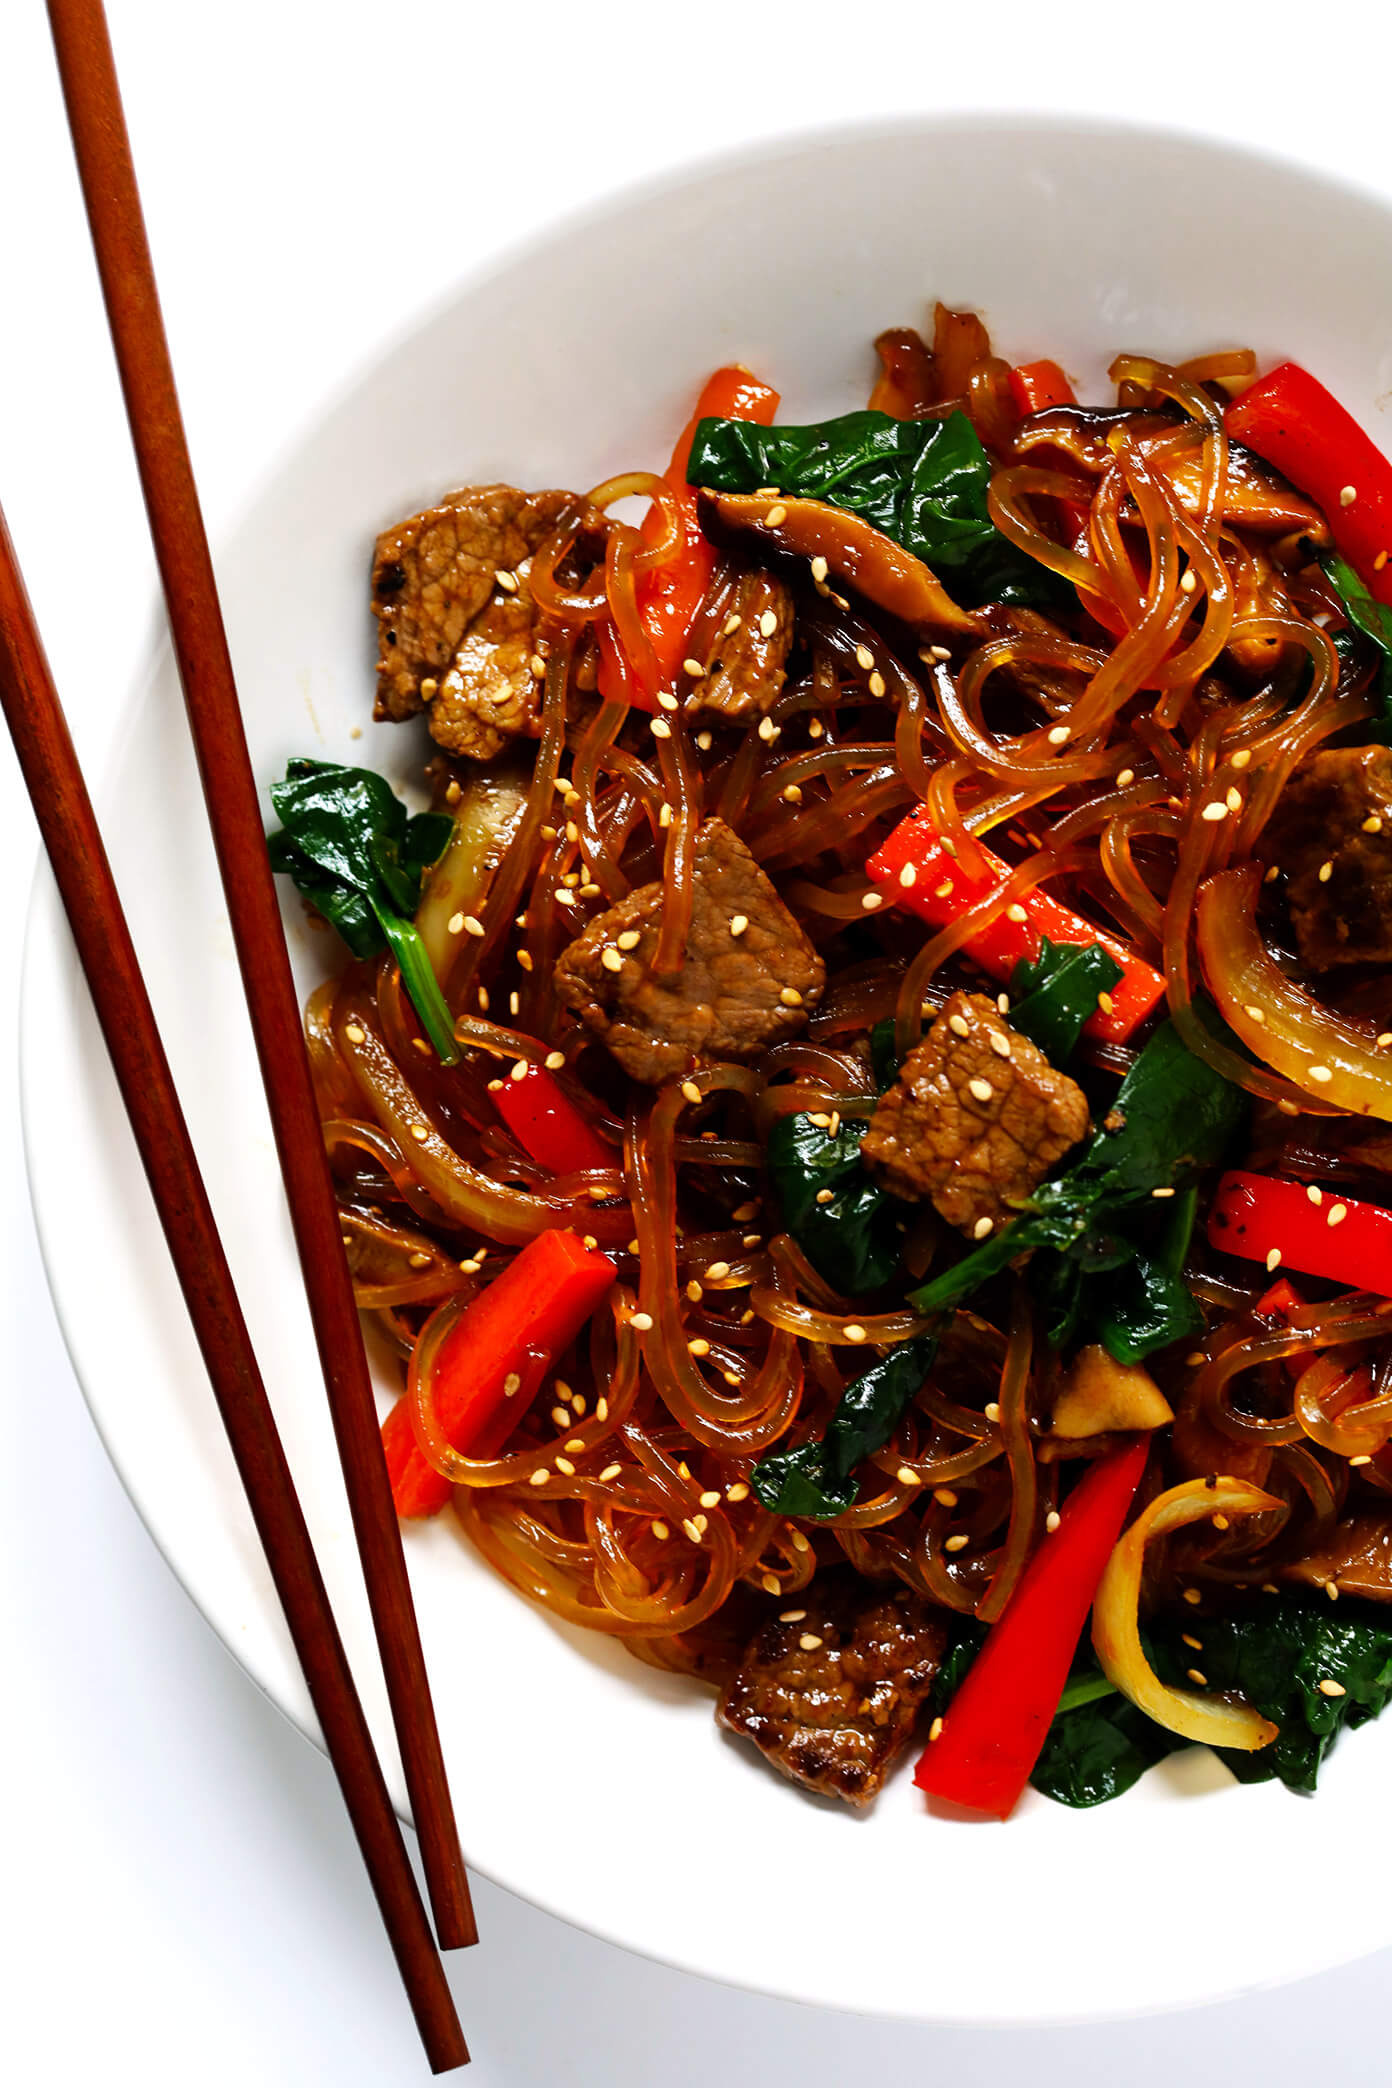 Japchae (Korean Noodle Stir-Fry)